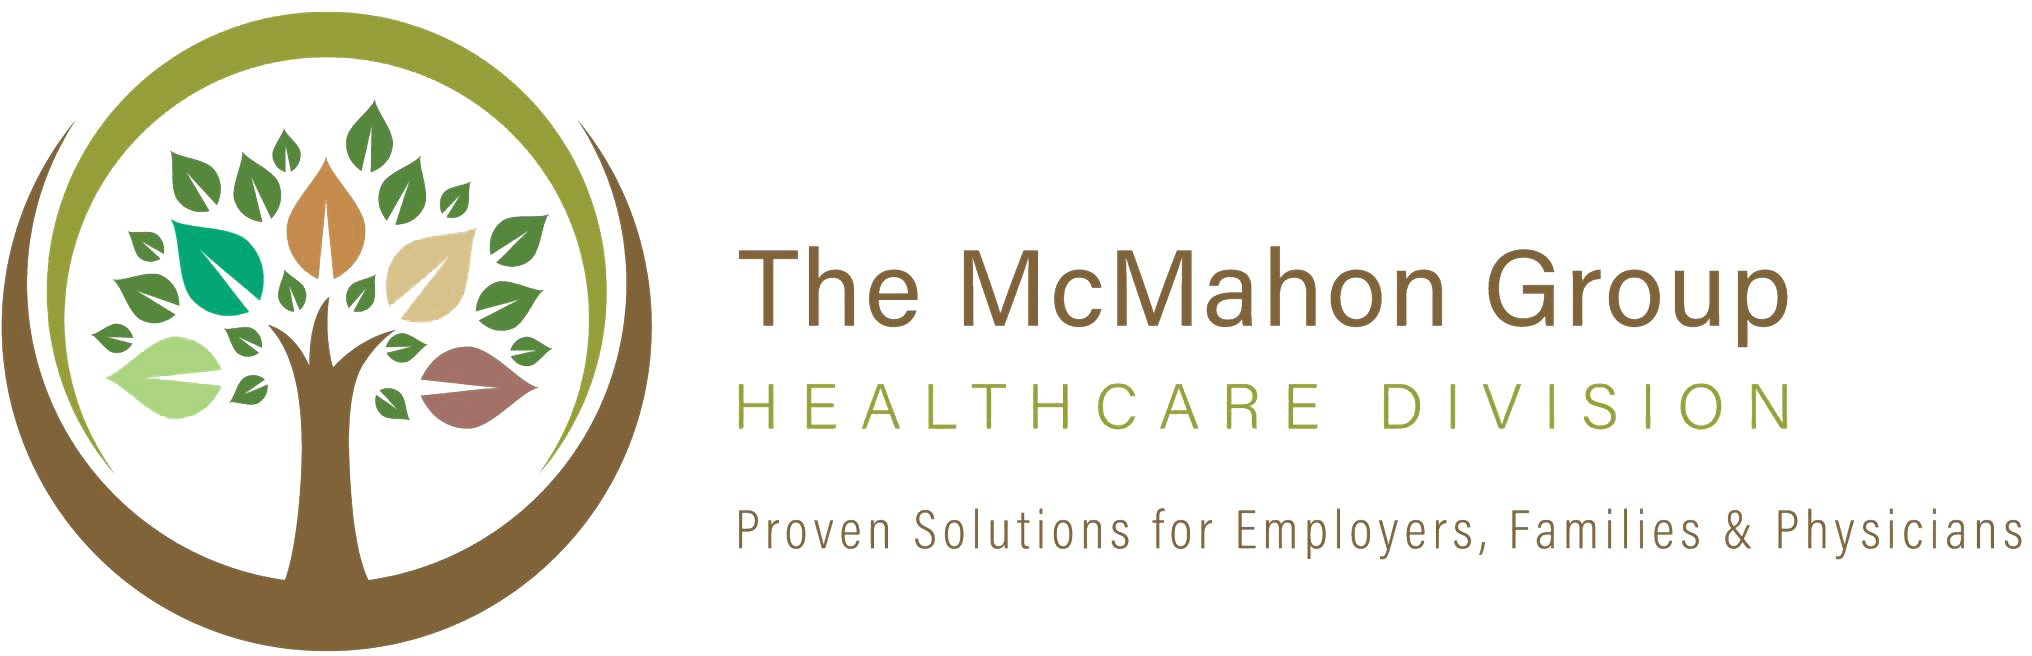 the mcmahon group logo